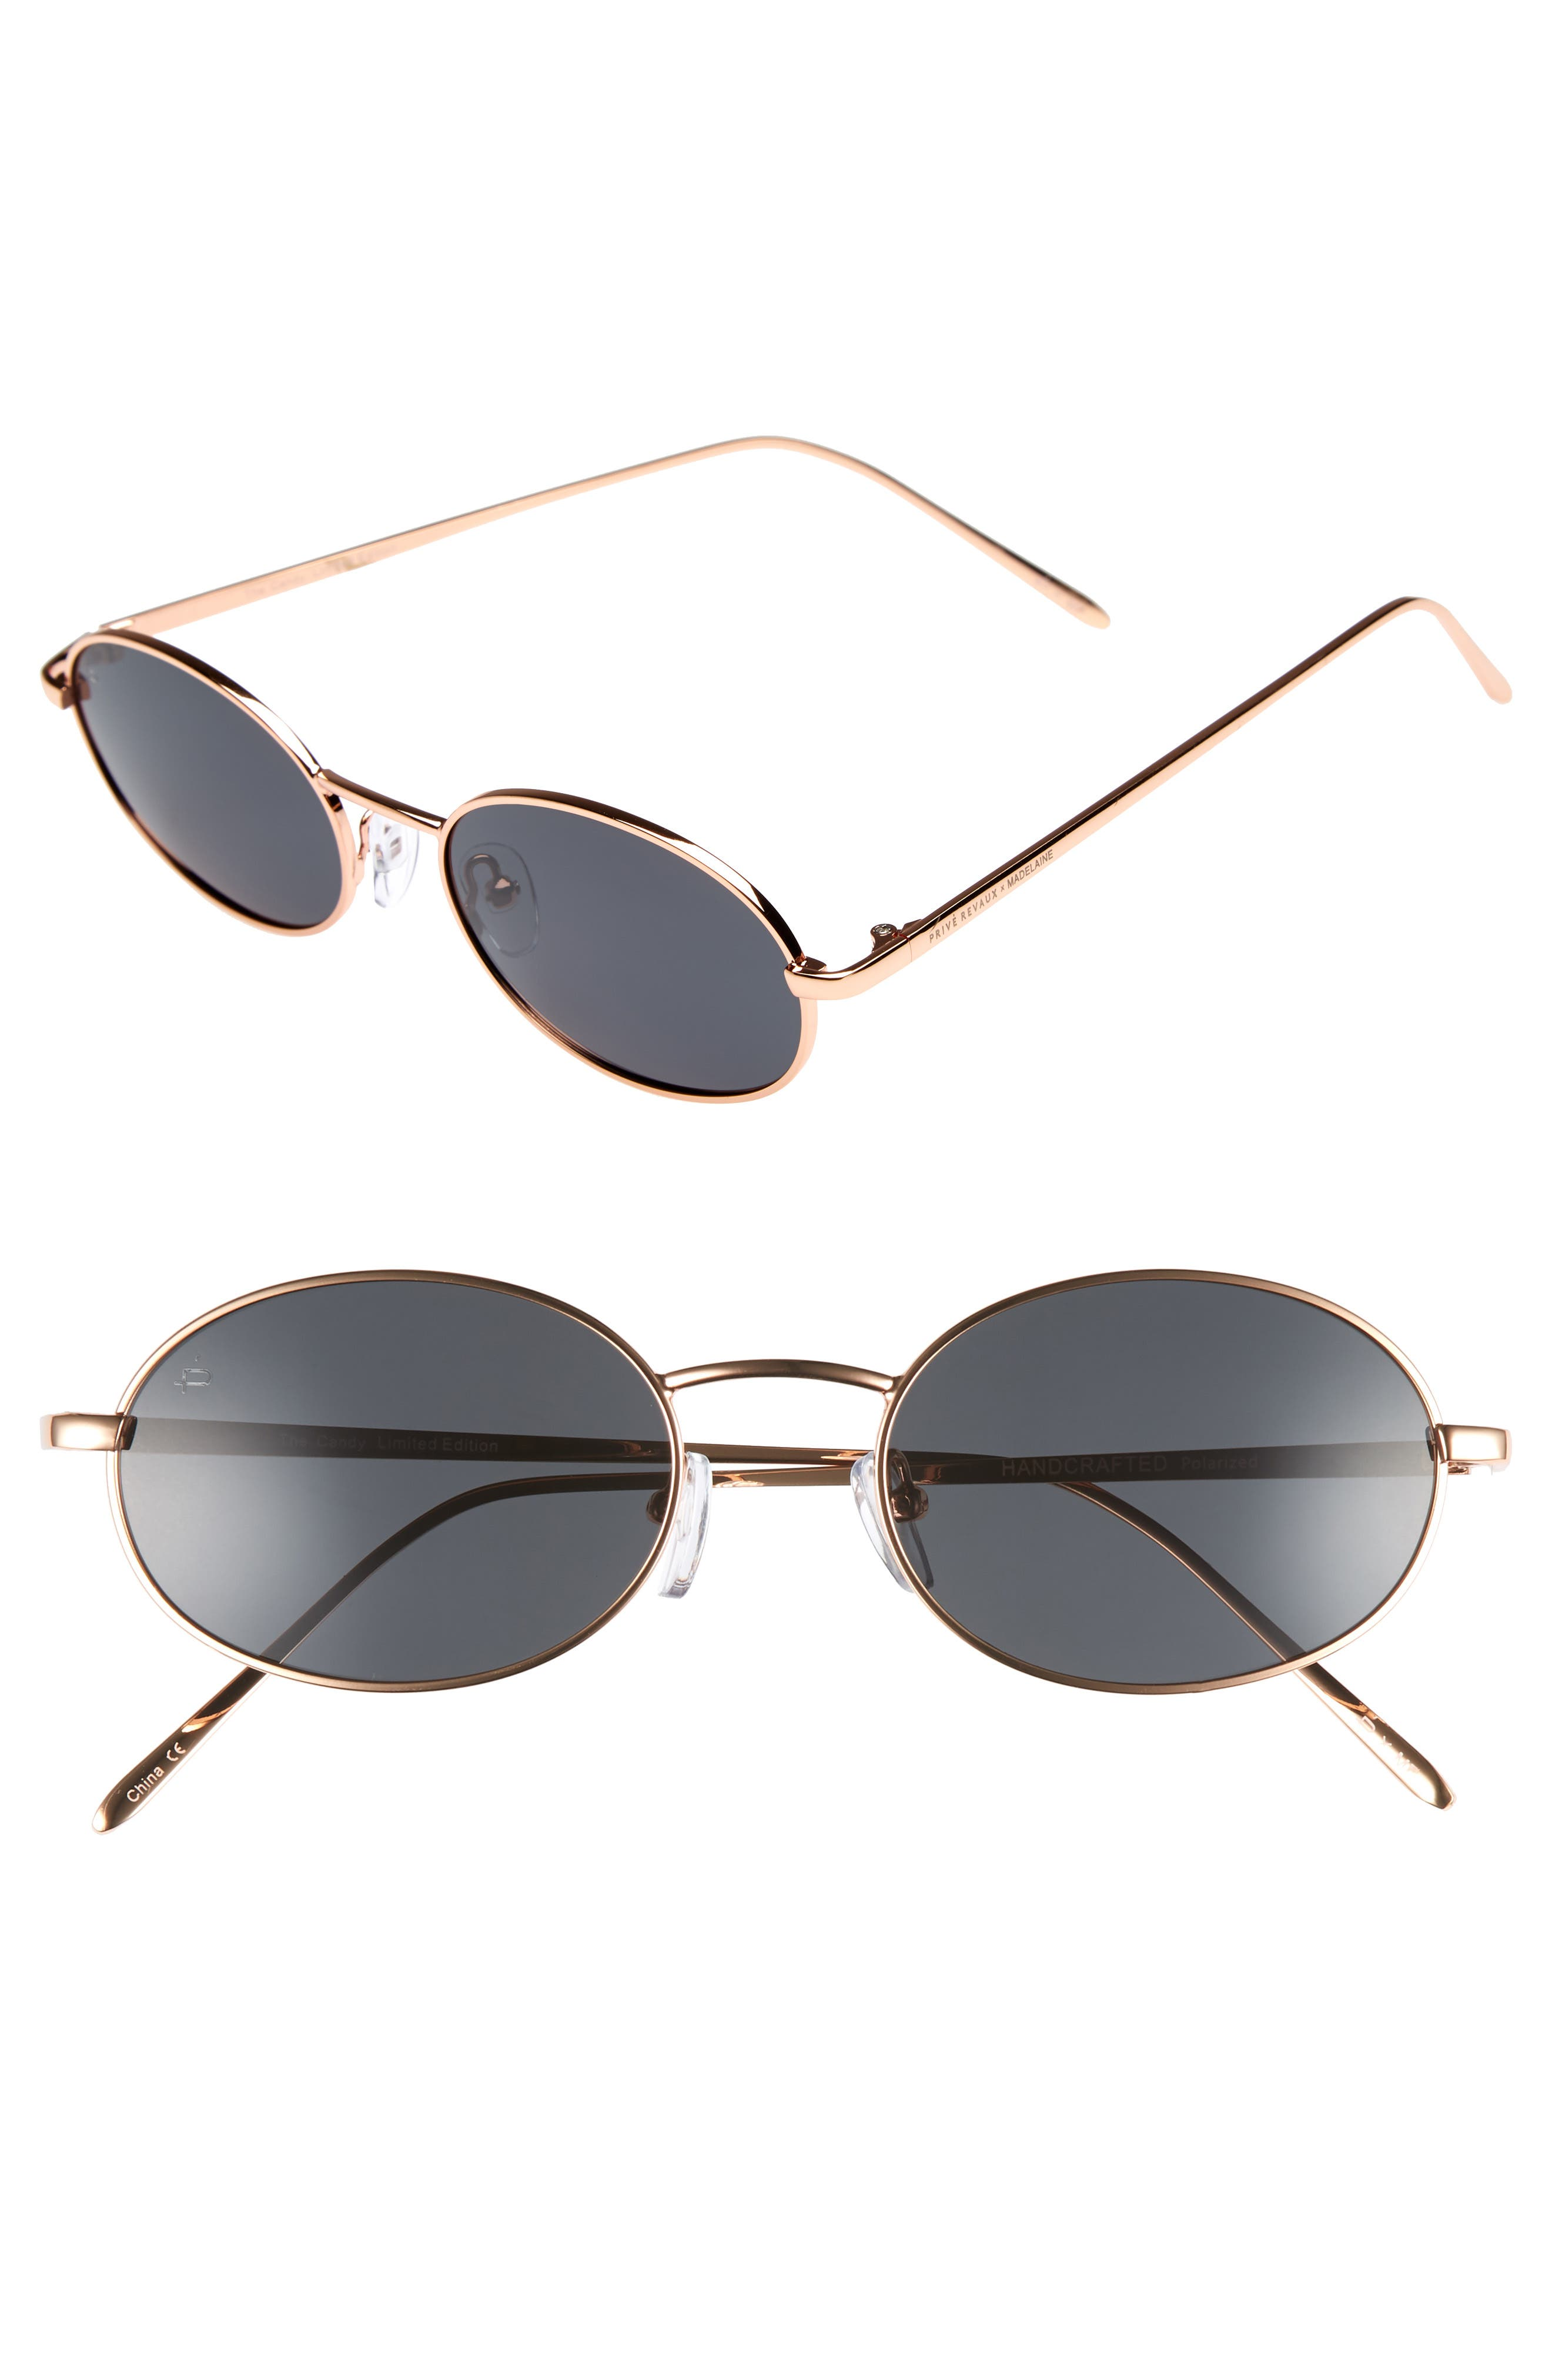 Privé Revaux x Madelaine Petsch The Candy 50mm Round Sunglasses,                         Main,                         color, Gold/ Smoke